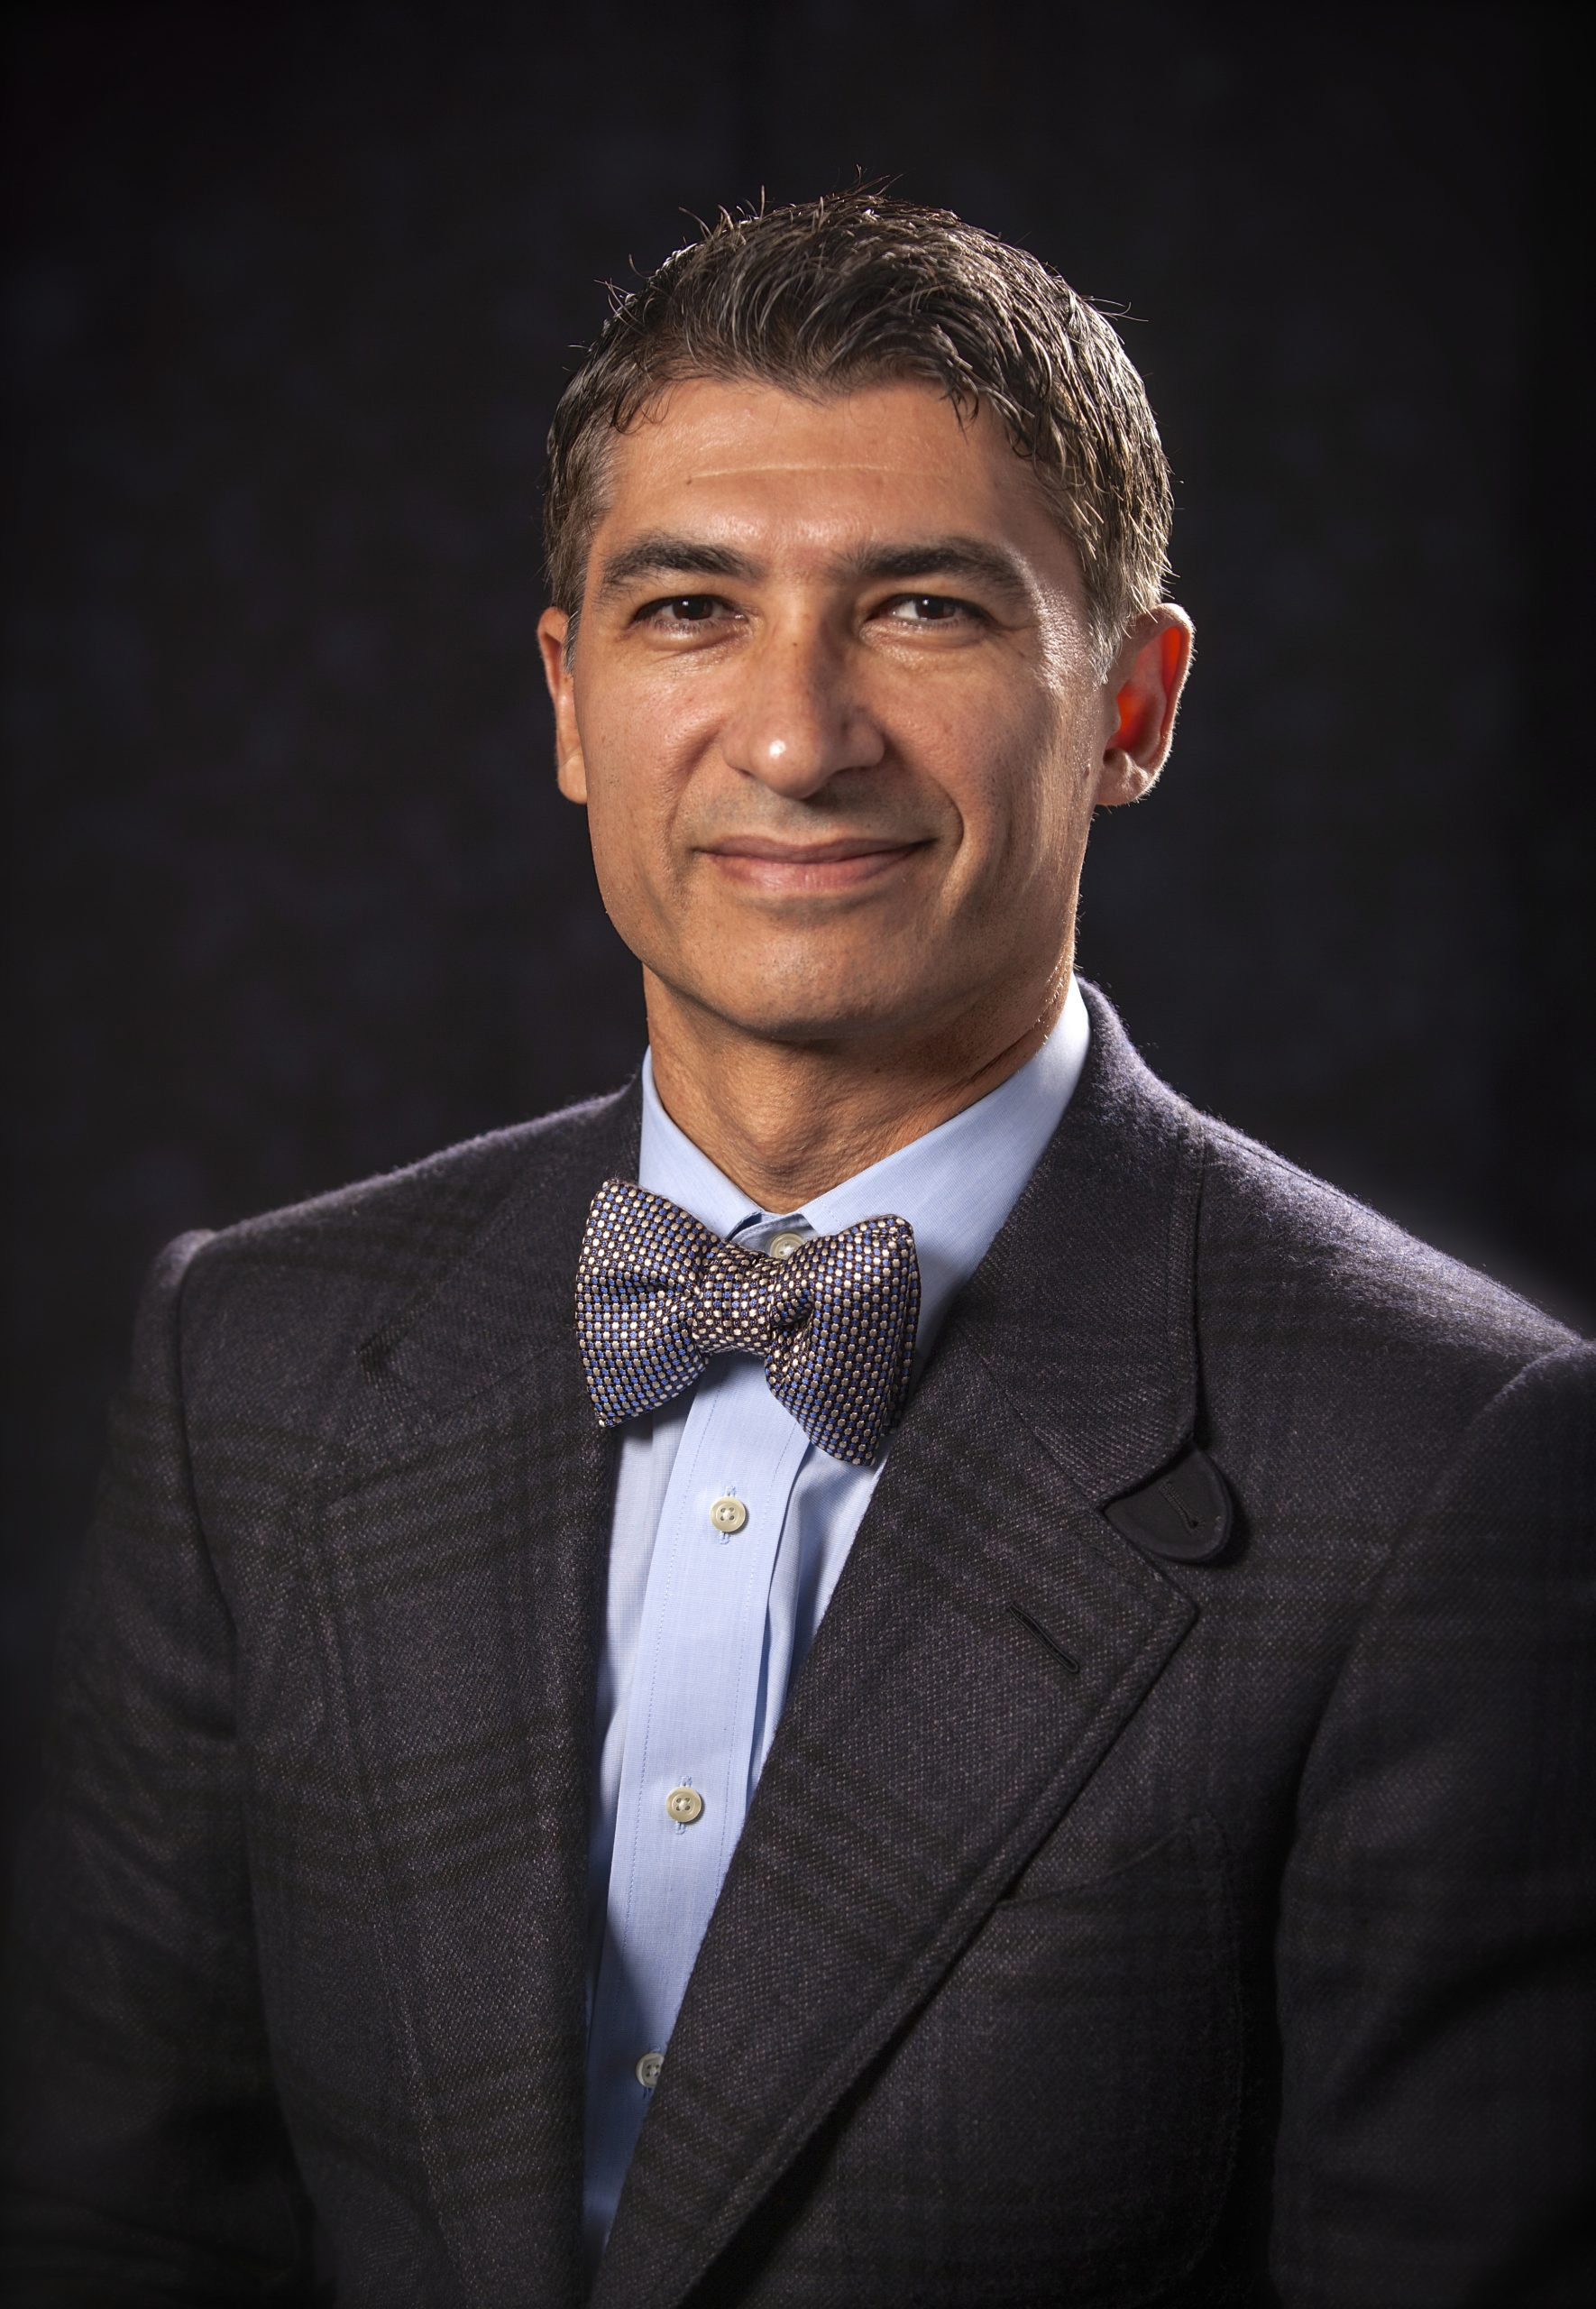 Dr. Poordad, vice president of academic and clinical affairs at The Texas Liver Institute and a clinical professor of medicine at the San Antonio University of Texas Health Science Center.